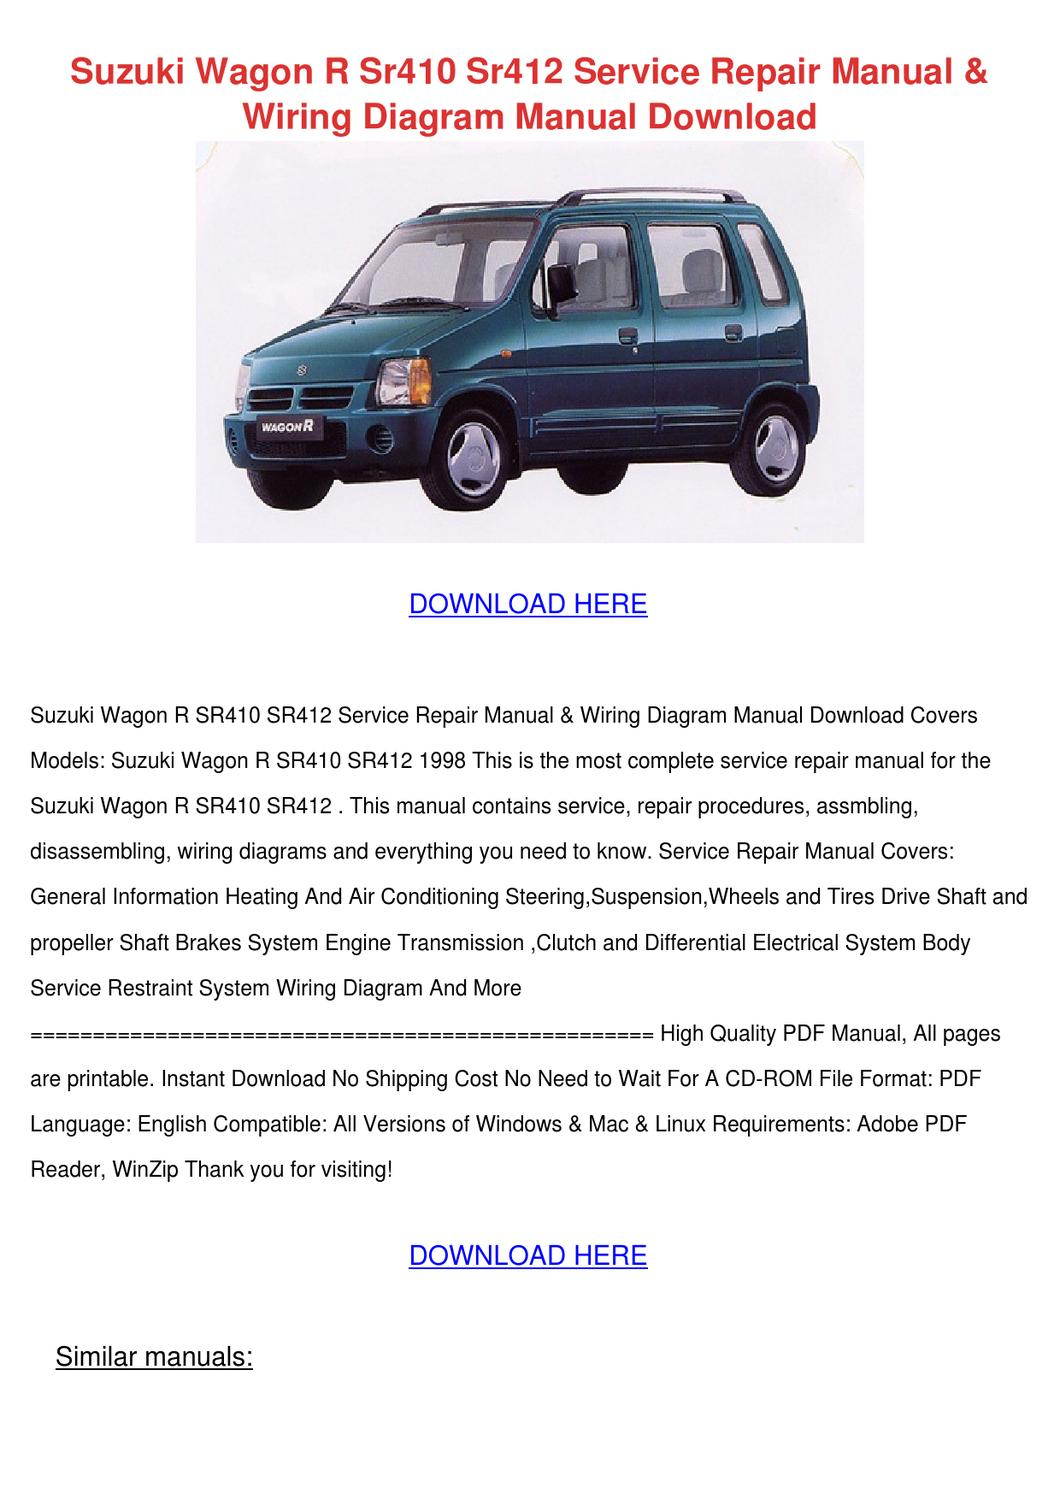 hight resolution of suzuki wagon r sr410 sr412 service repair man by yadira angeli issuu